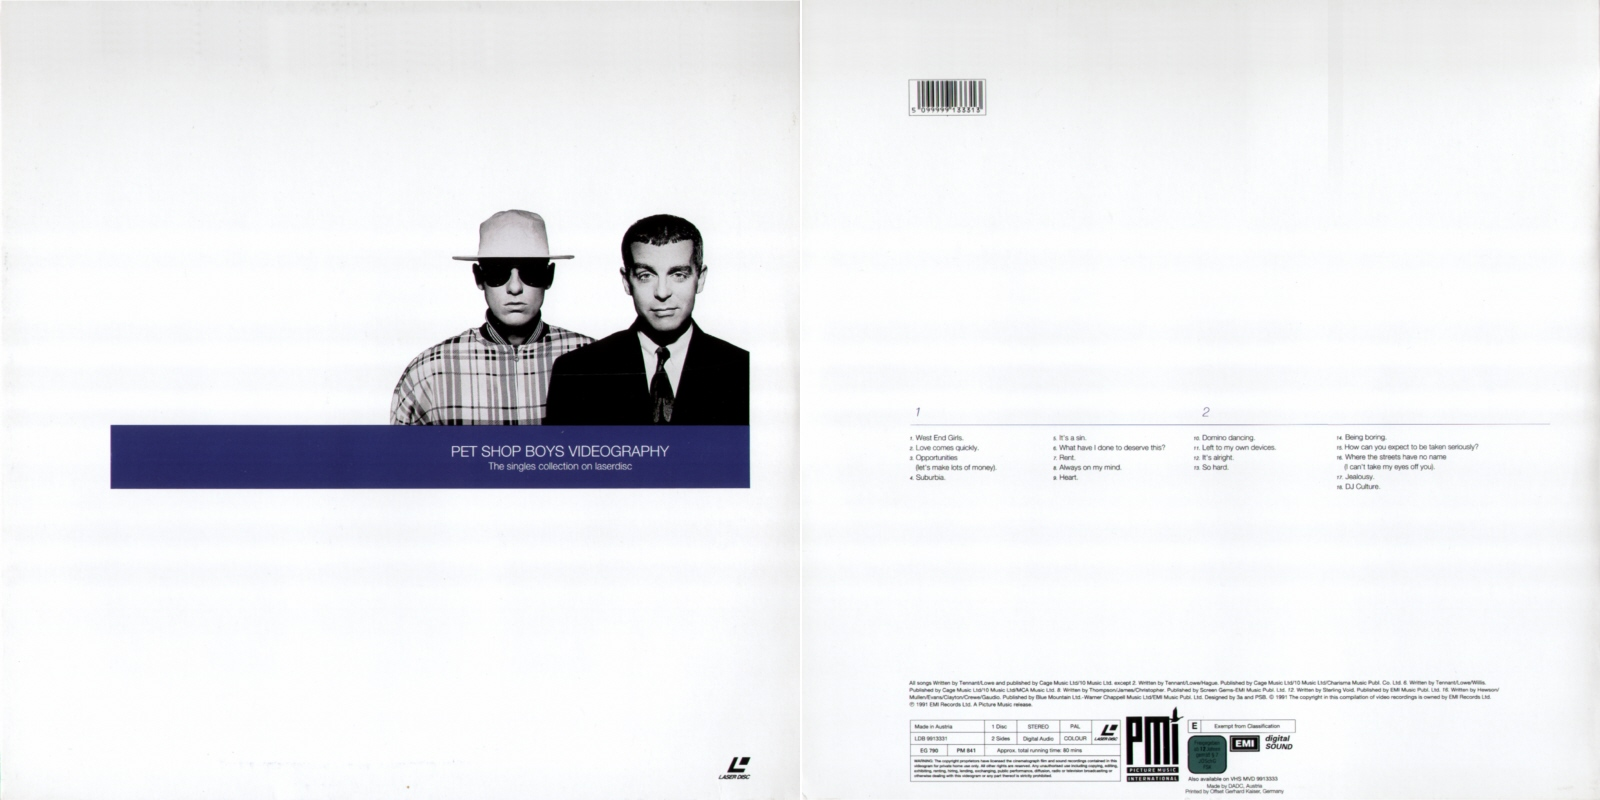 Videography - 12''LD: 1991 AT (Picture Music Int'l;